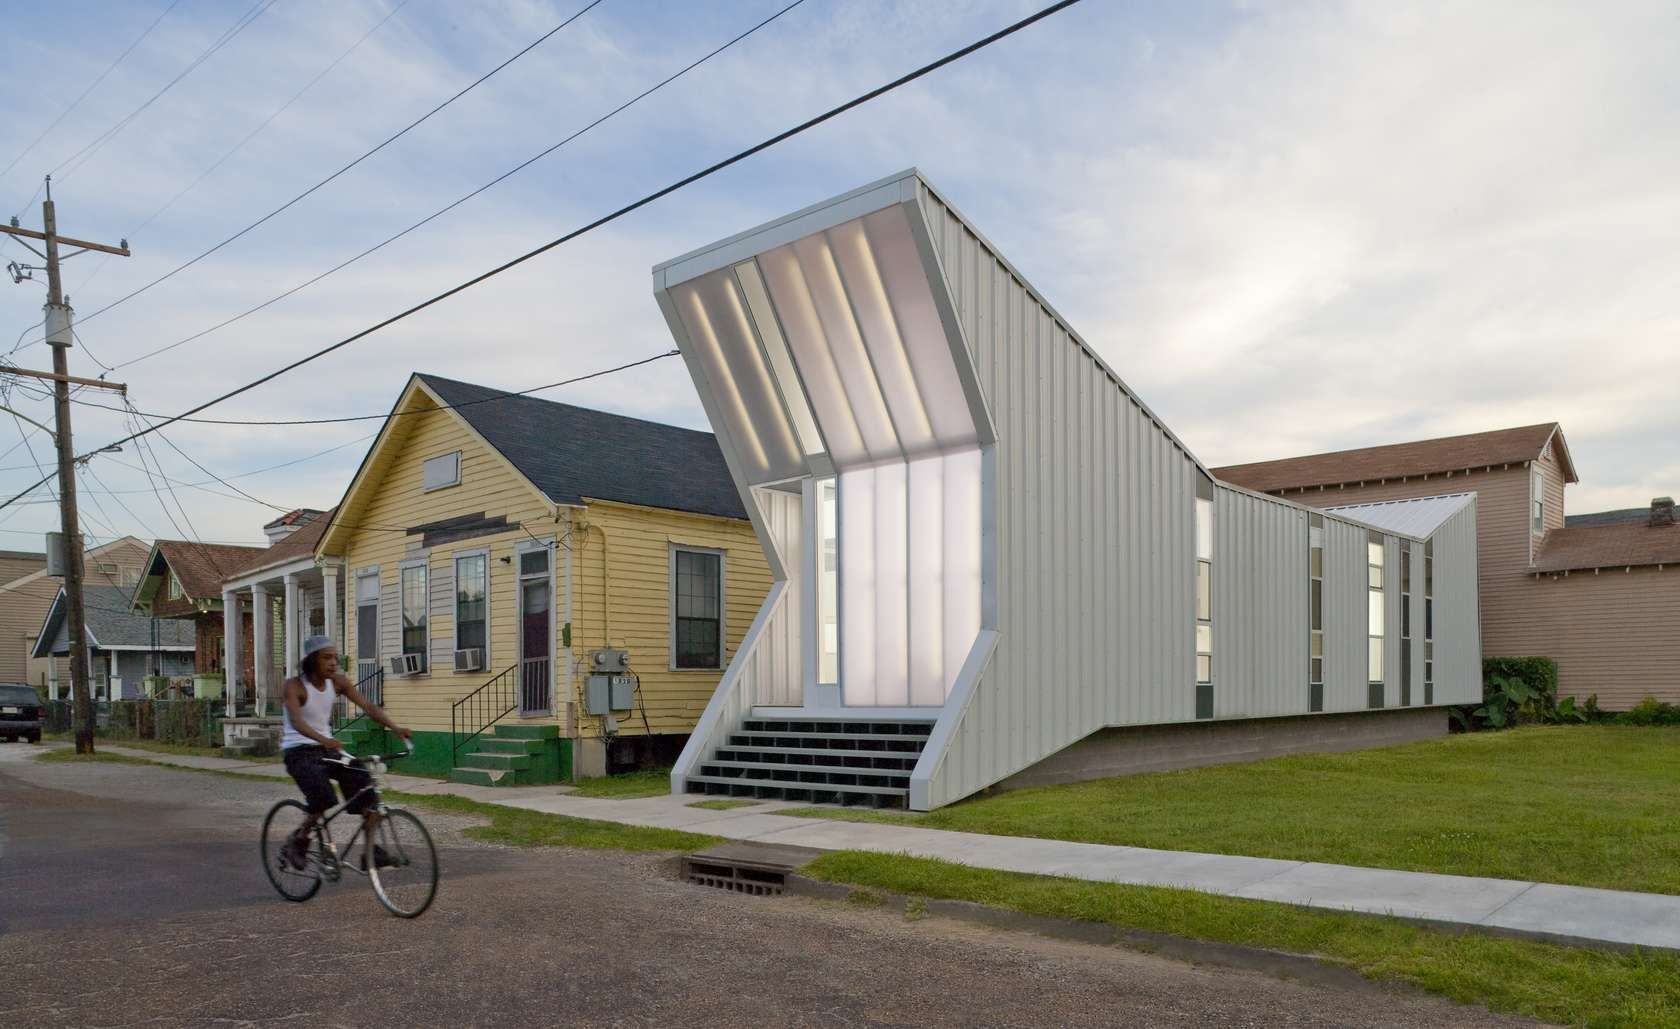 new orleans architecture studio building studio has taken the challenge of post katrina rehousing in new orleans when finished neighborhood housing